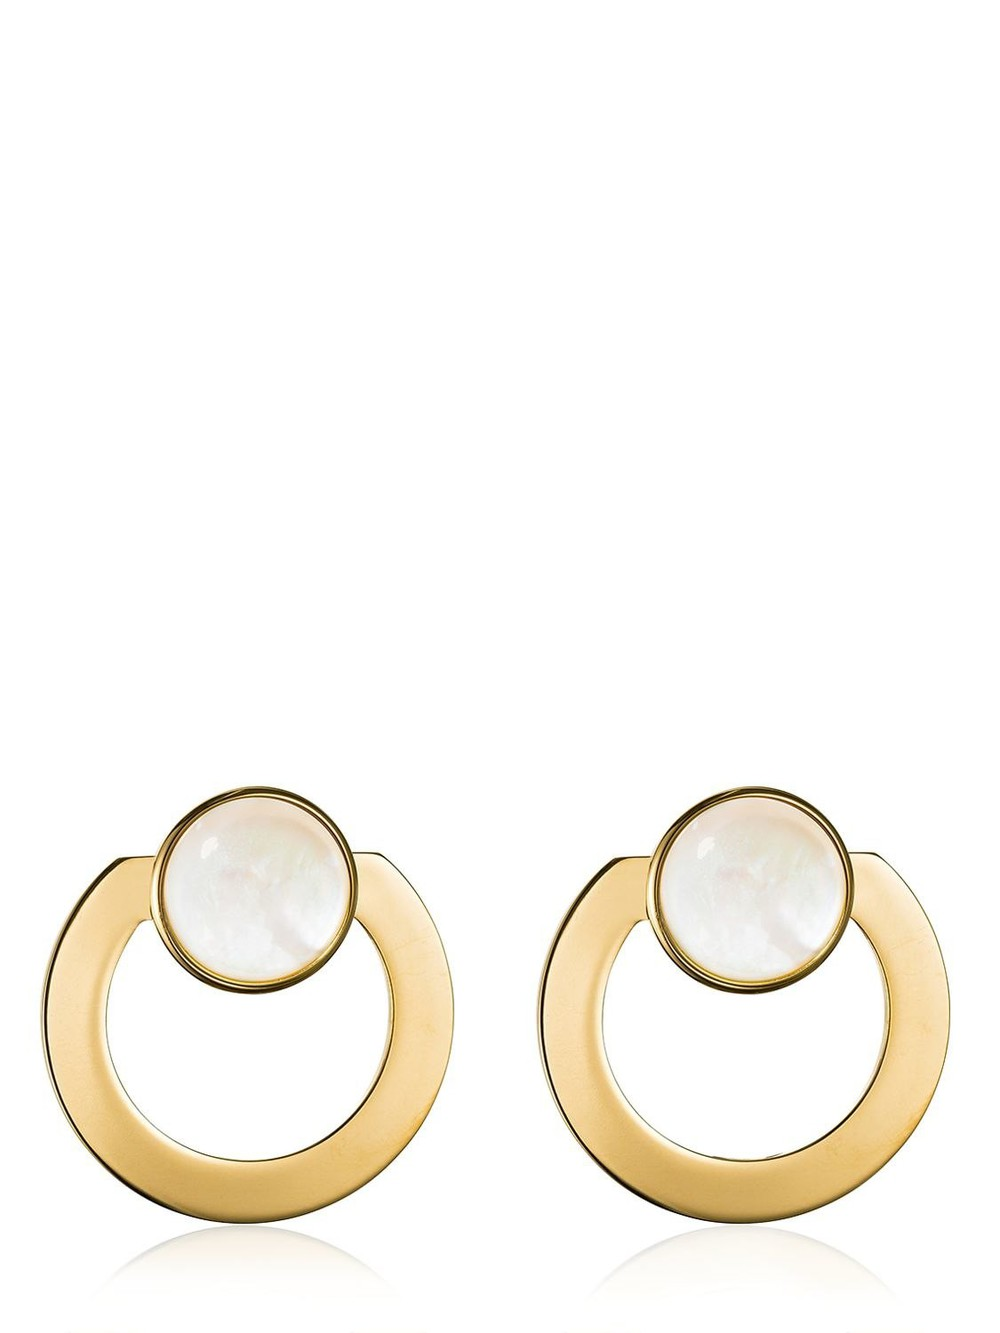 VITA FEDE Moneta Open Mother Of Pearl Earrings in gold